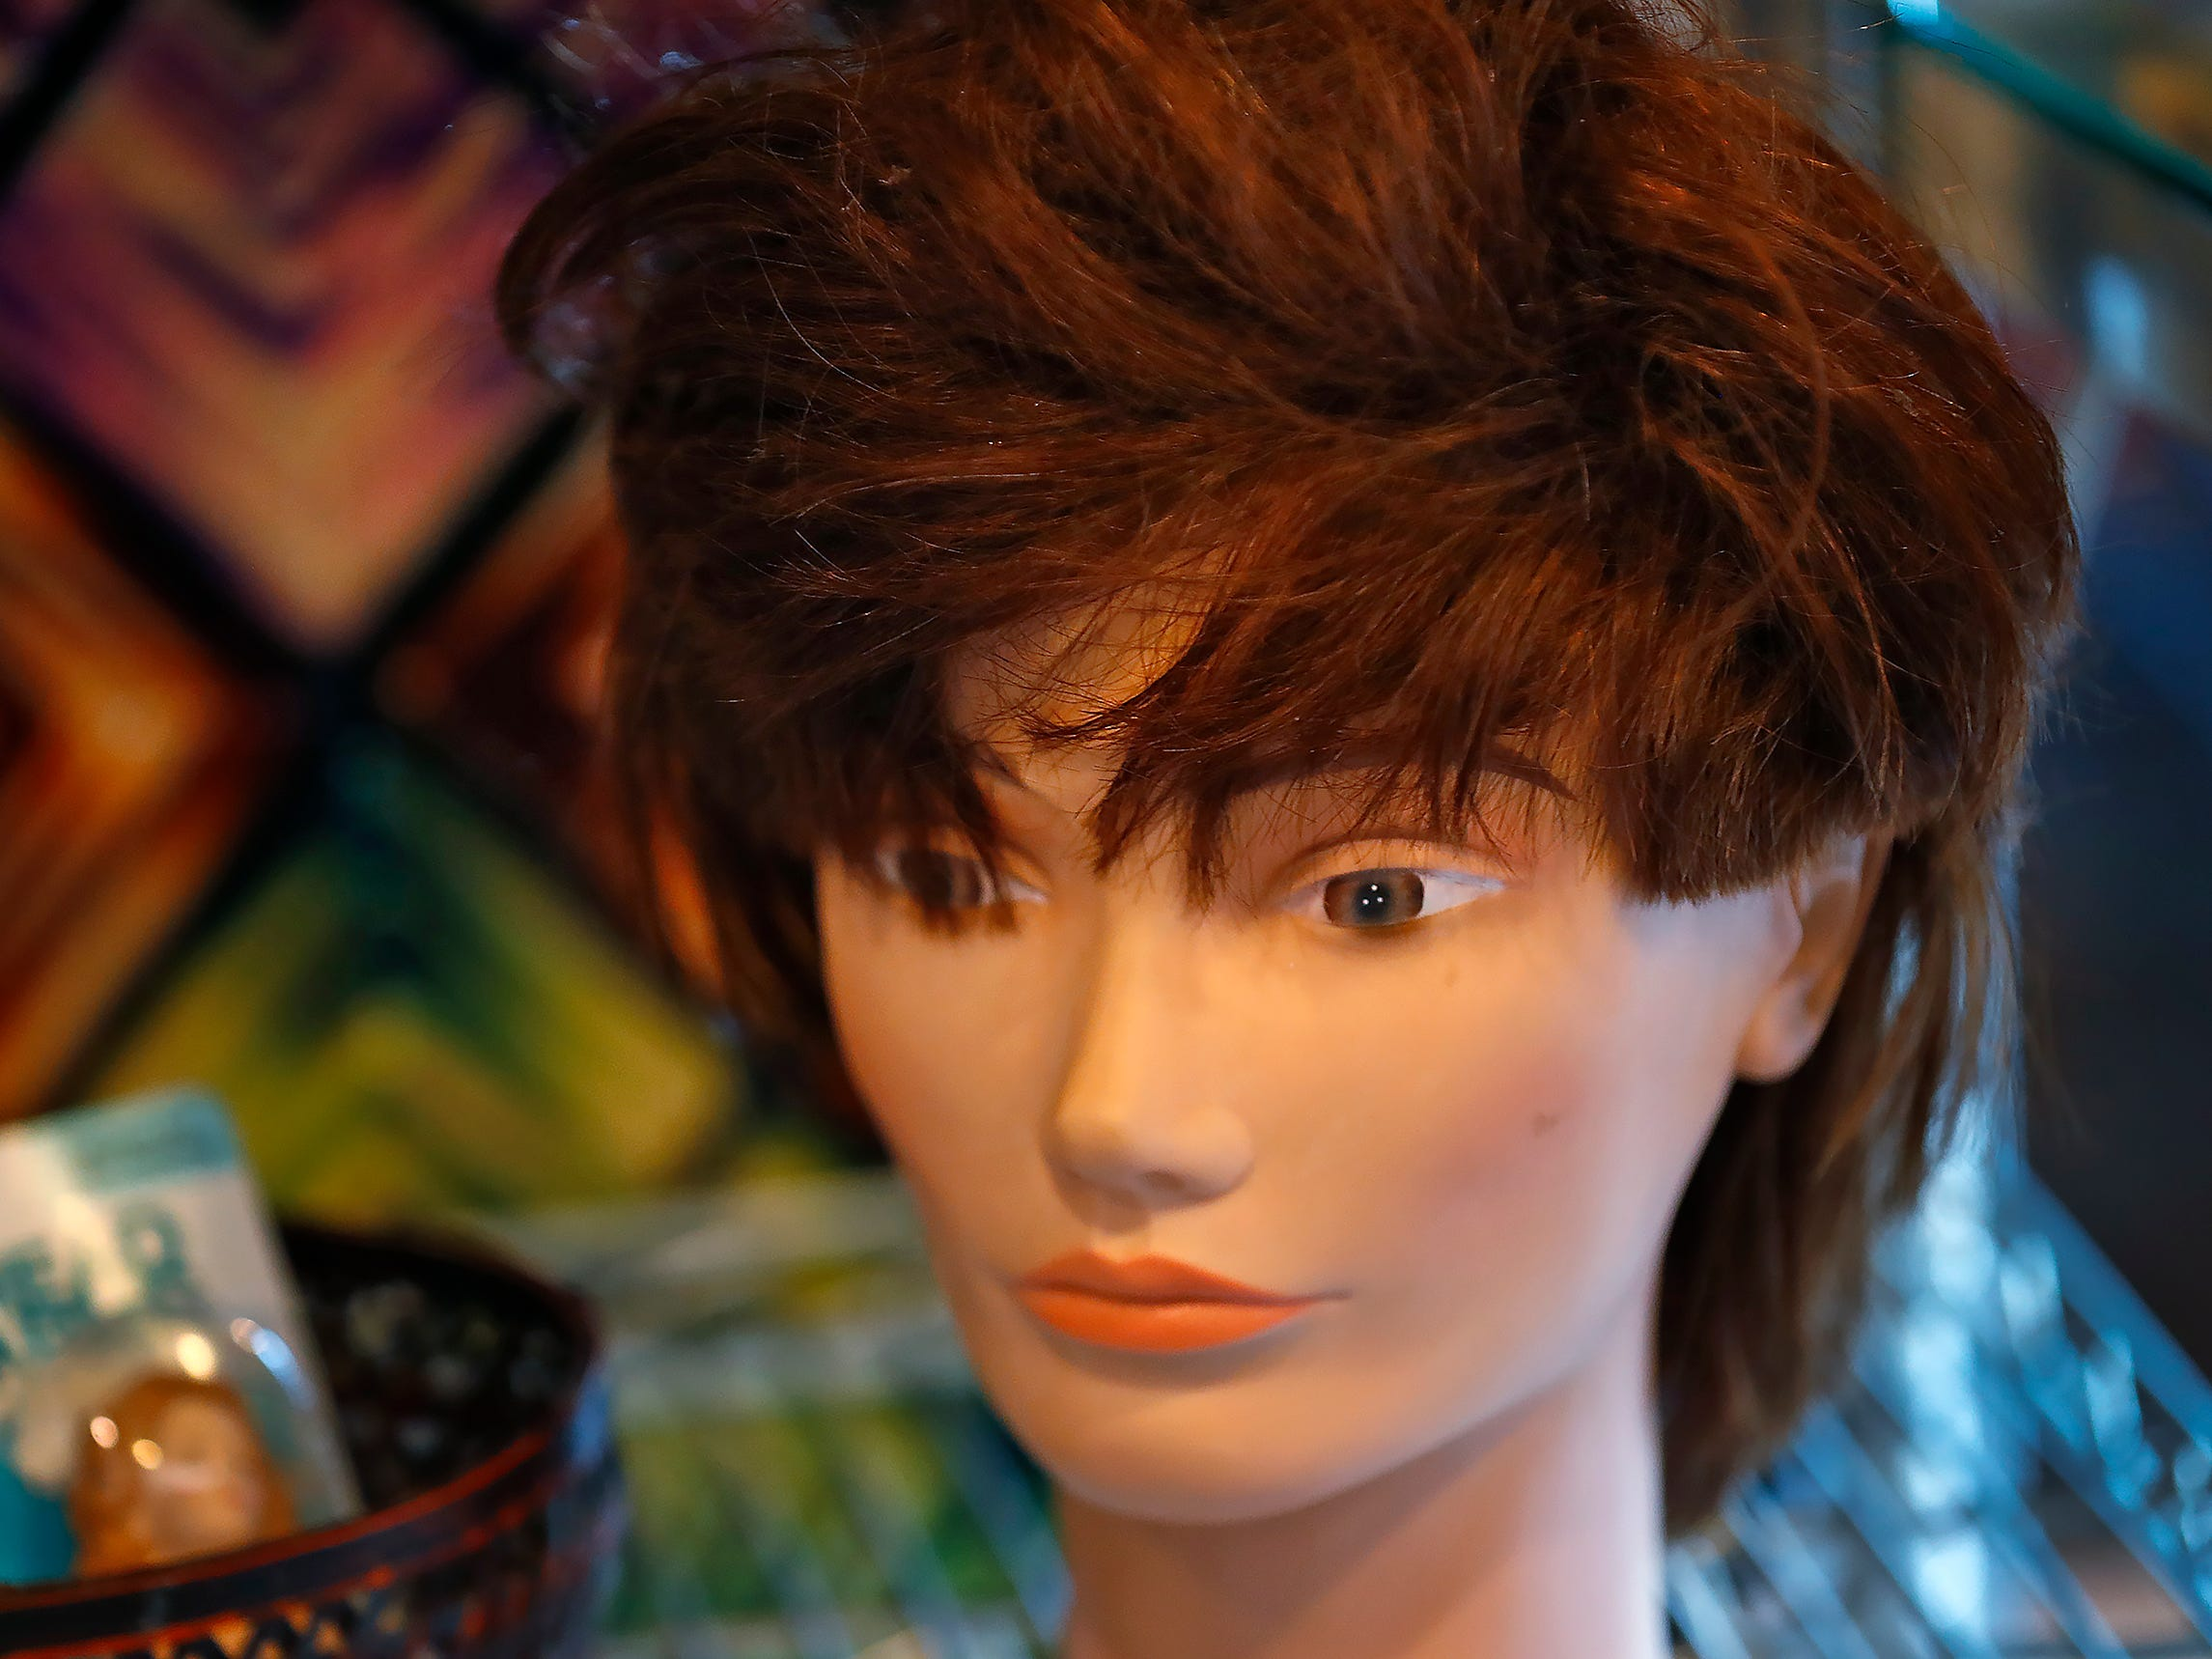 A mannequin head and wig are seen for sale at ReCraft, Tuesday, Dec. 11, 2018.  Many of the store's items are donated or ready for re-use. ReCraft was born out of Bethany Daugherty's love of crafting and her interest in environmental activism.  At the secondhand craft and hobby store, Daugherty also teaches workshops.  Sustainability and environmentalism are the focus of the store.